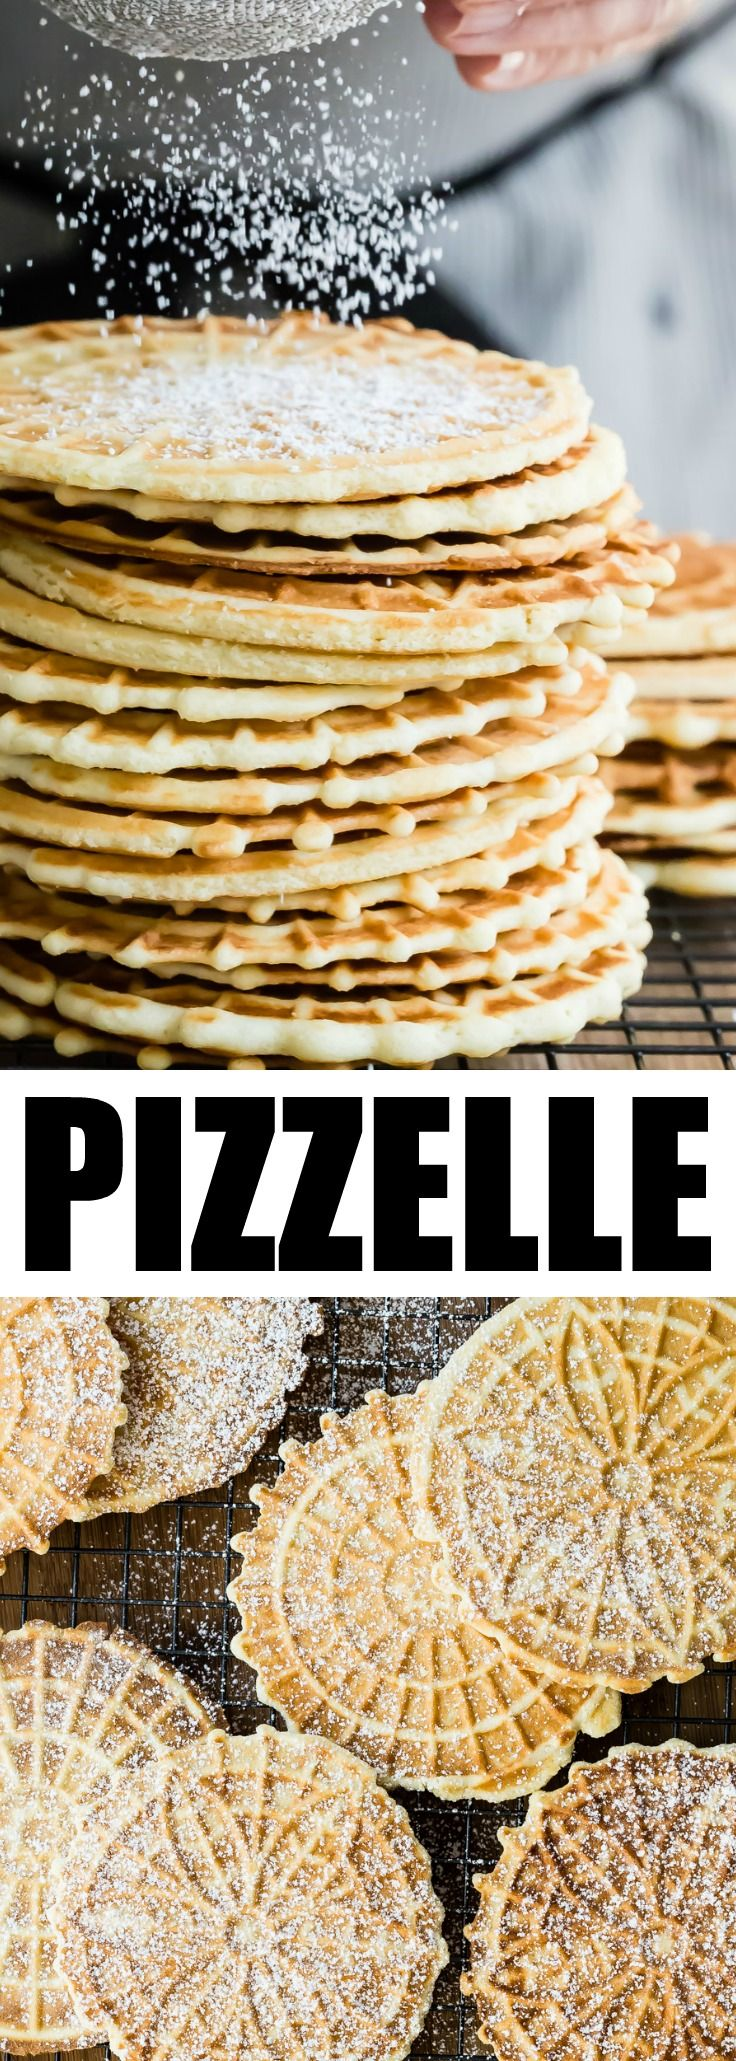 An easy Pizzelle recipe for the classic Italian cookie. Lightly sweetened and flavored with vanilla or anise, they are perfect for holiday gift-giving! via @culinaryhill